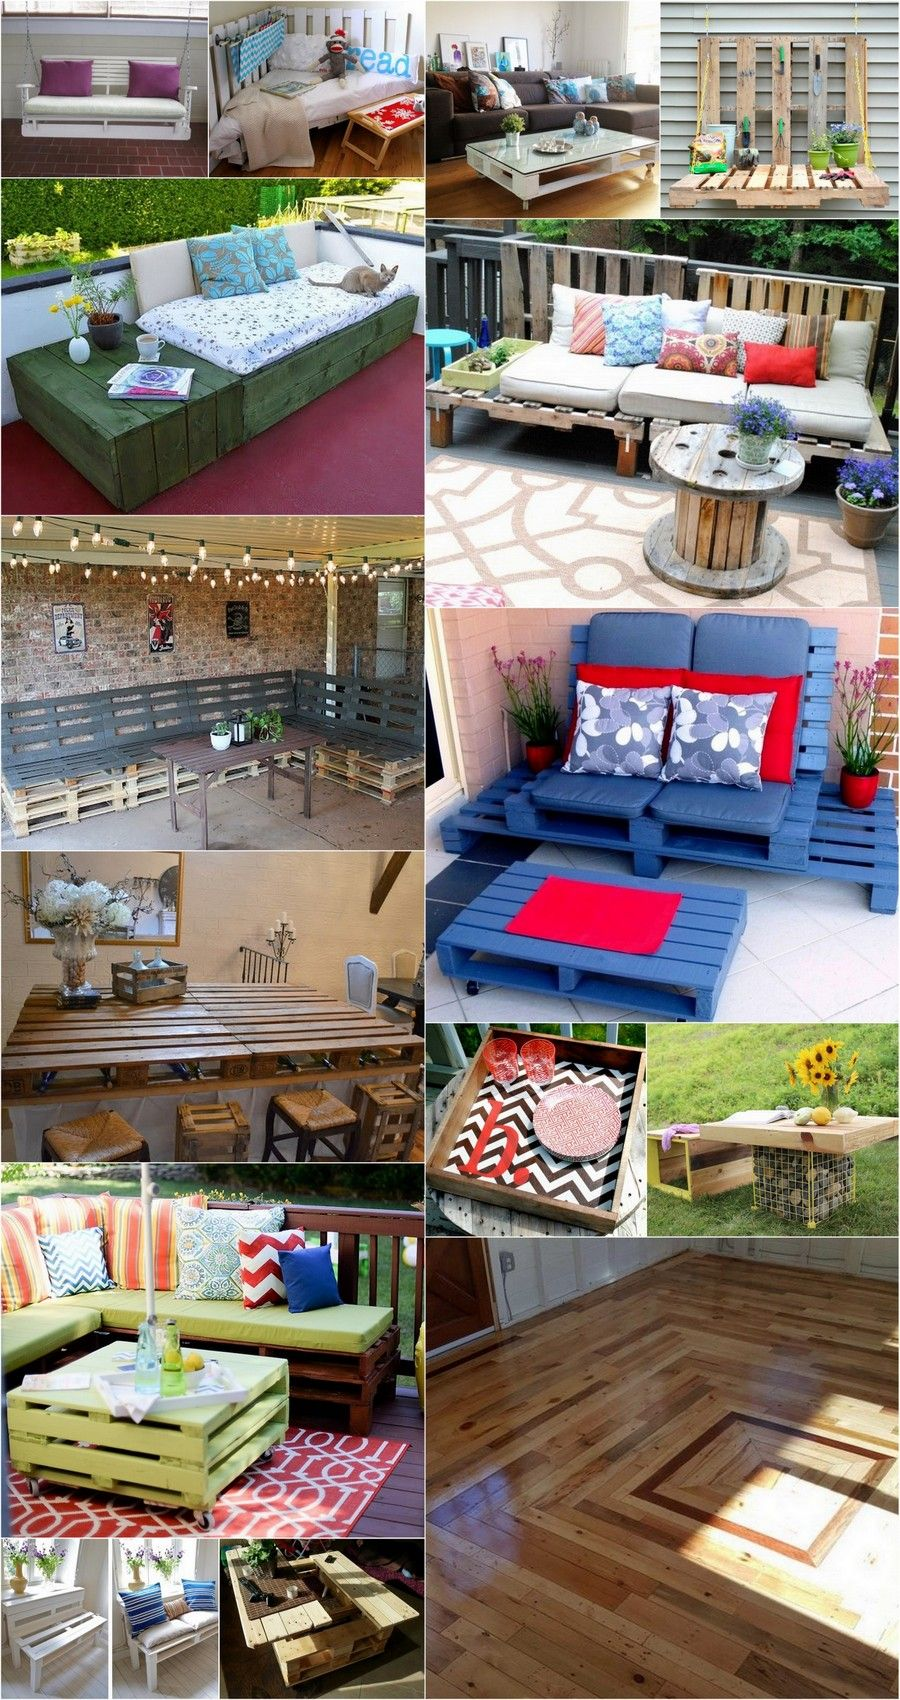 Wooden Pallet Projects Plans - coffe table with storage ...